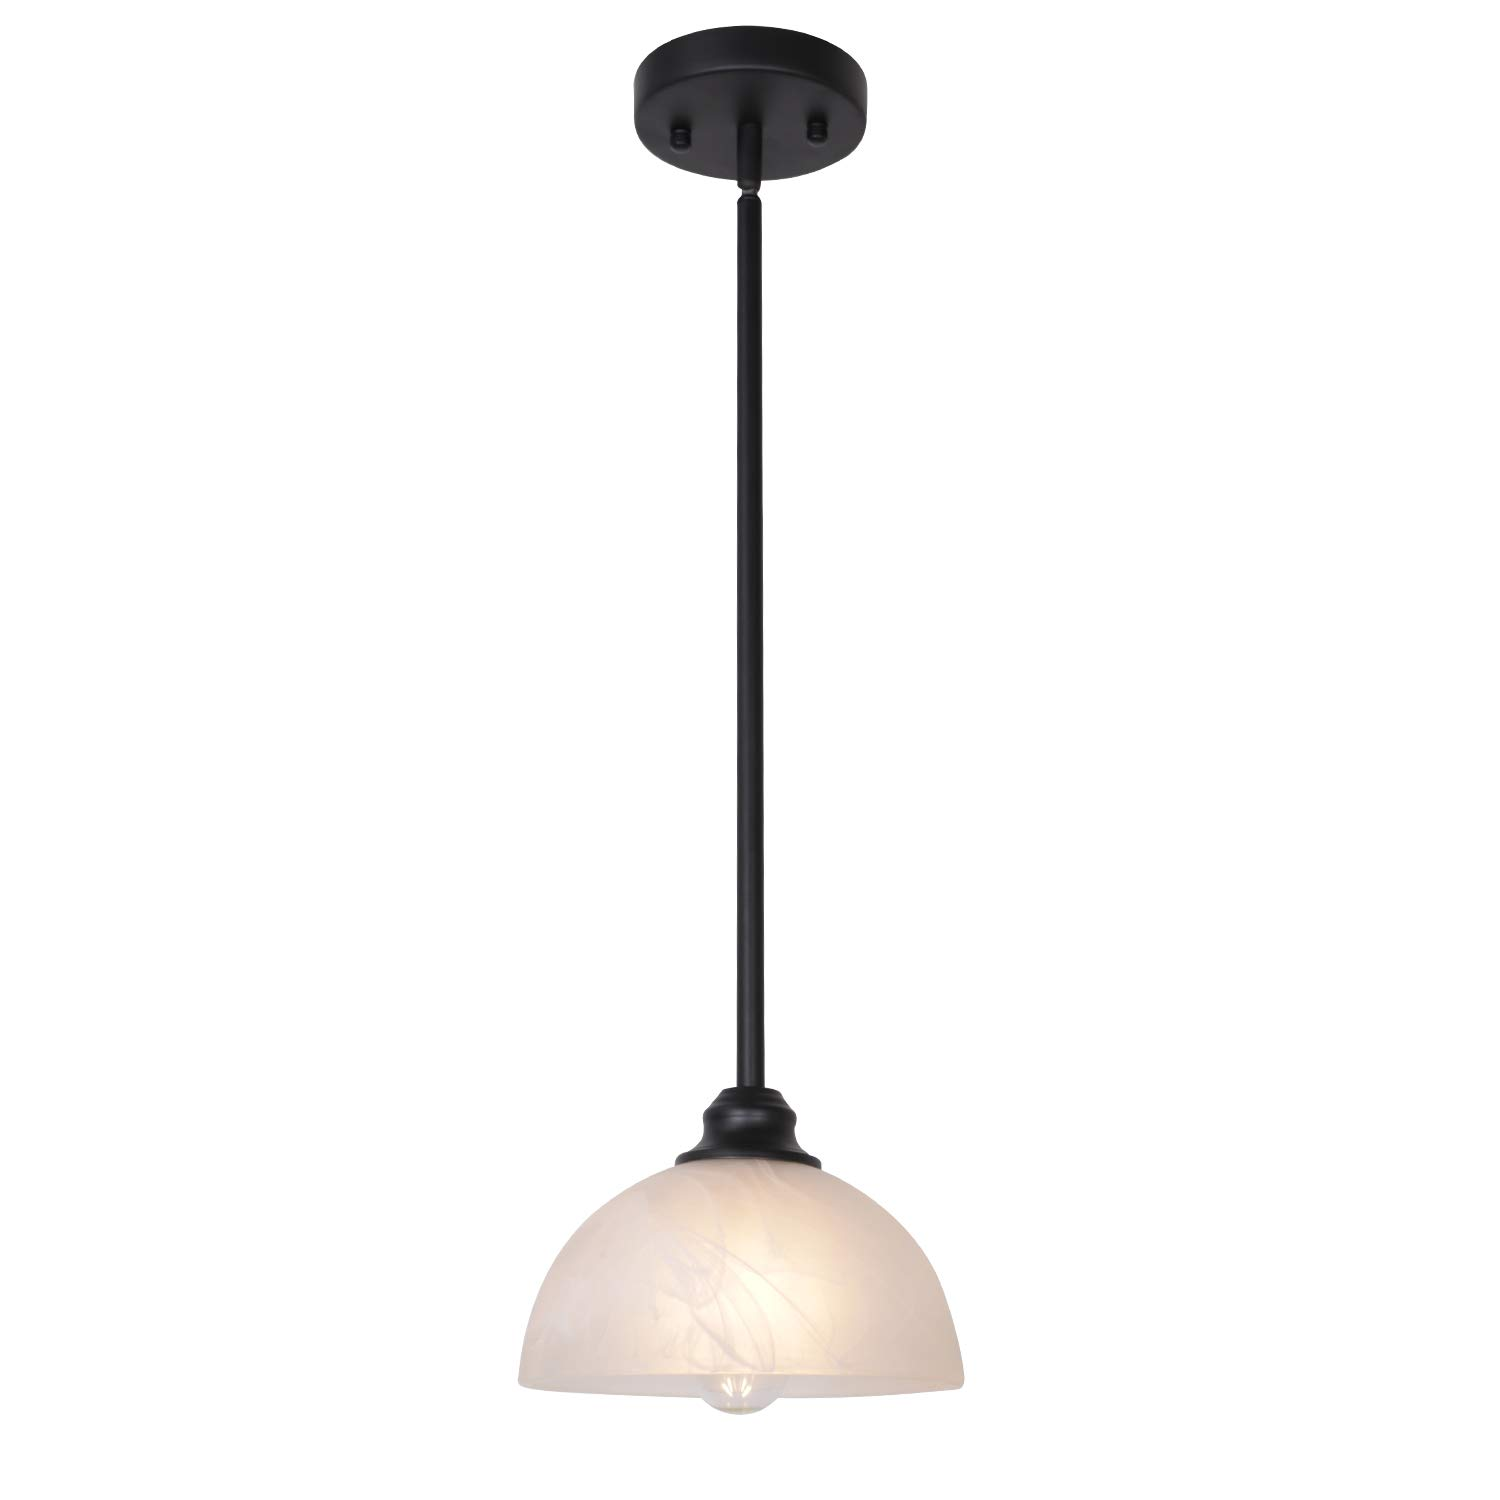 TULUCE Contemporary One-Light Pendant with Alabaster Glass Shades Black Light Fixtures Ceiling Hanging for Kitchen Dining Room Bedroom